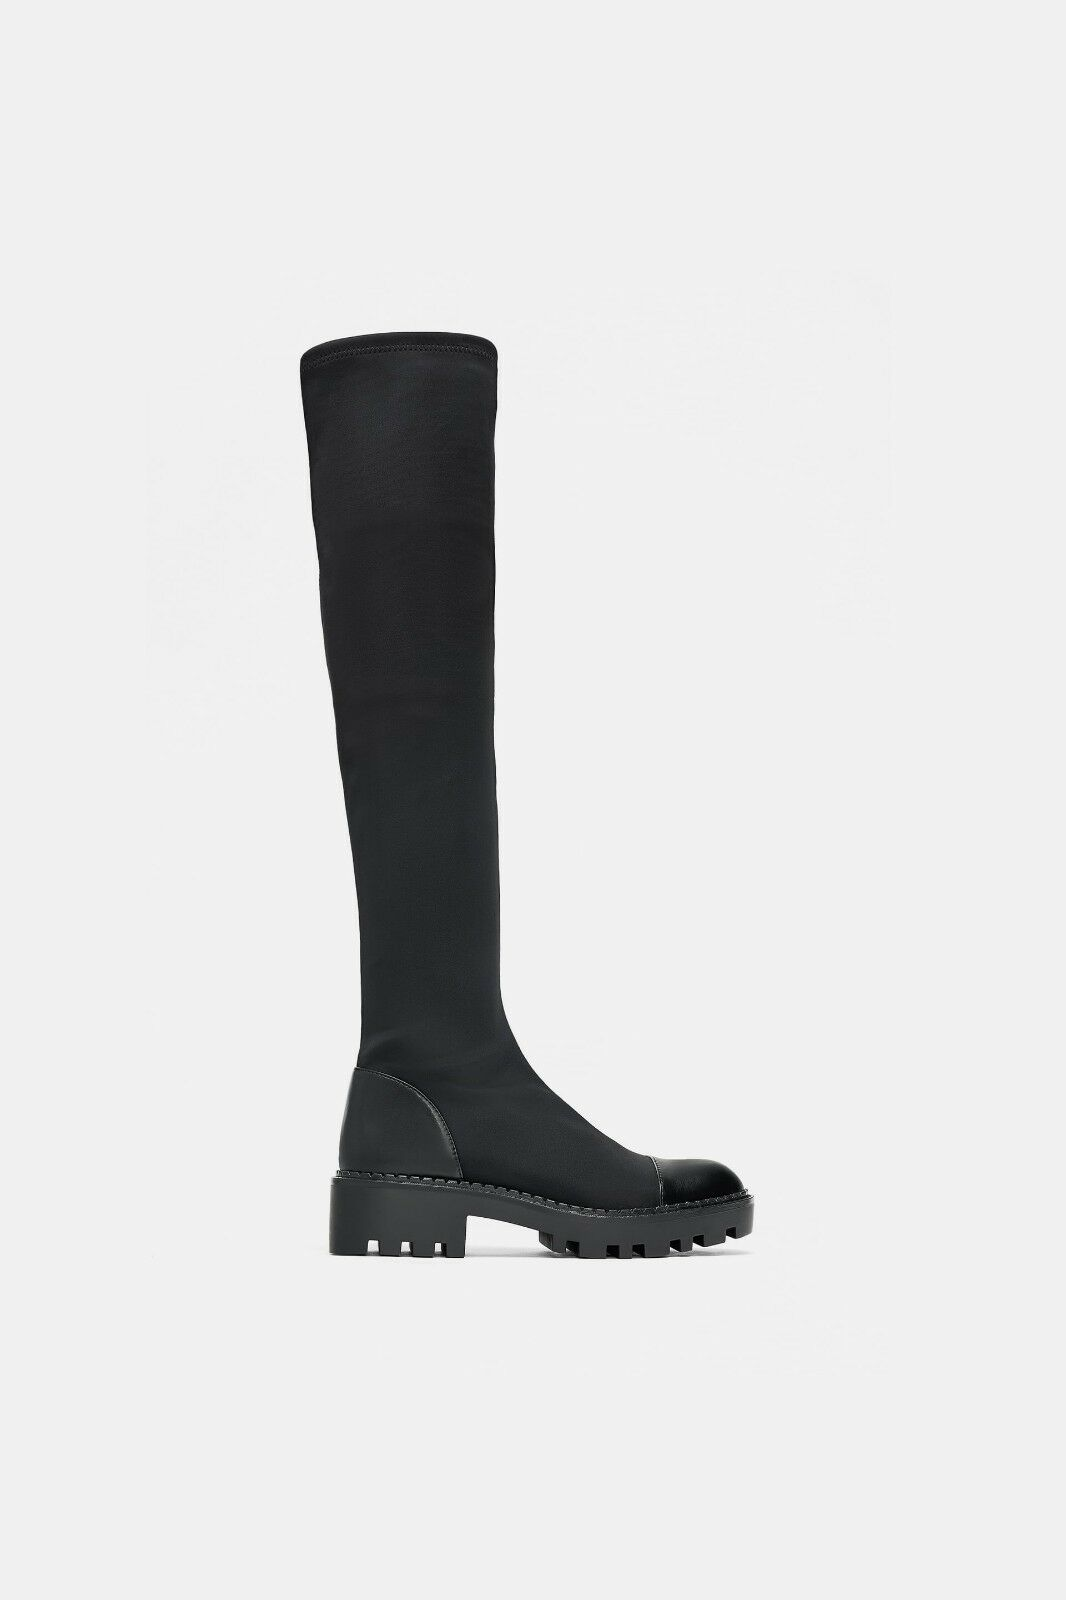 ZARA NEW AW 2018 TALL TRACK SOLE TALL 2018 Stiefel ALL SIZES AVAILABLE BLACK REF. 7050/301 470a5e